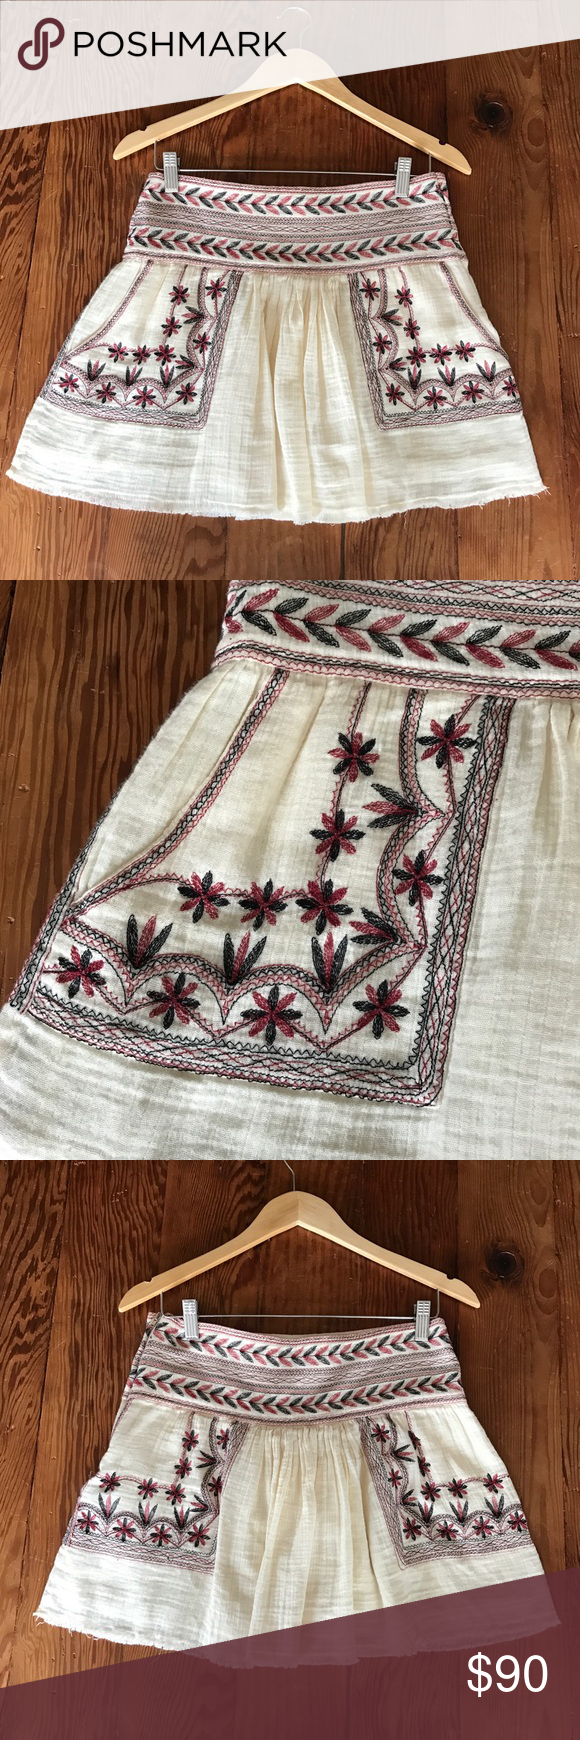 Isabel Marant Embroidered Mini Skirt, size 36 Isabel Marant Embroidered Mini Skirt, size 36 which is a US size small. Excellent condition, no flaws to note. Isabel Marant Skirts Mini